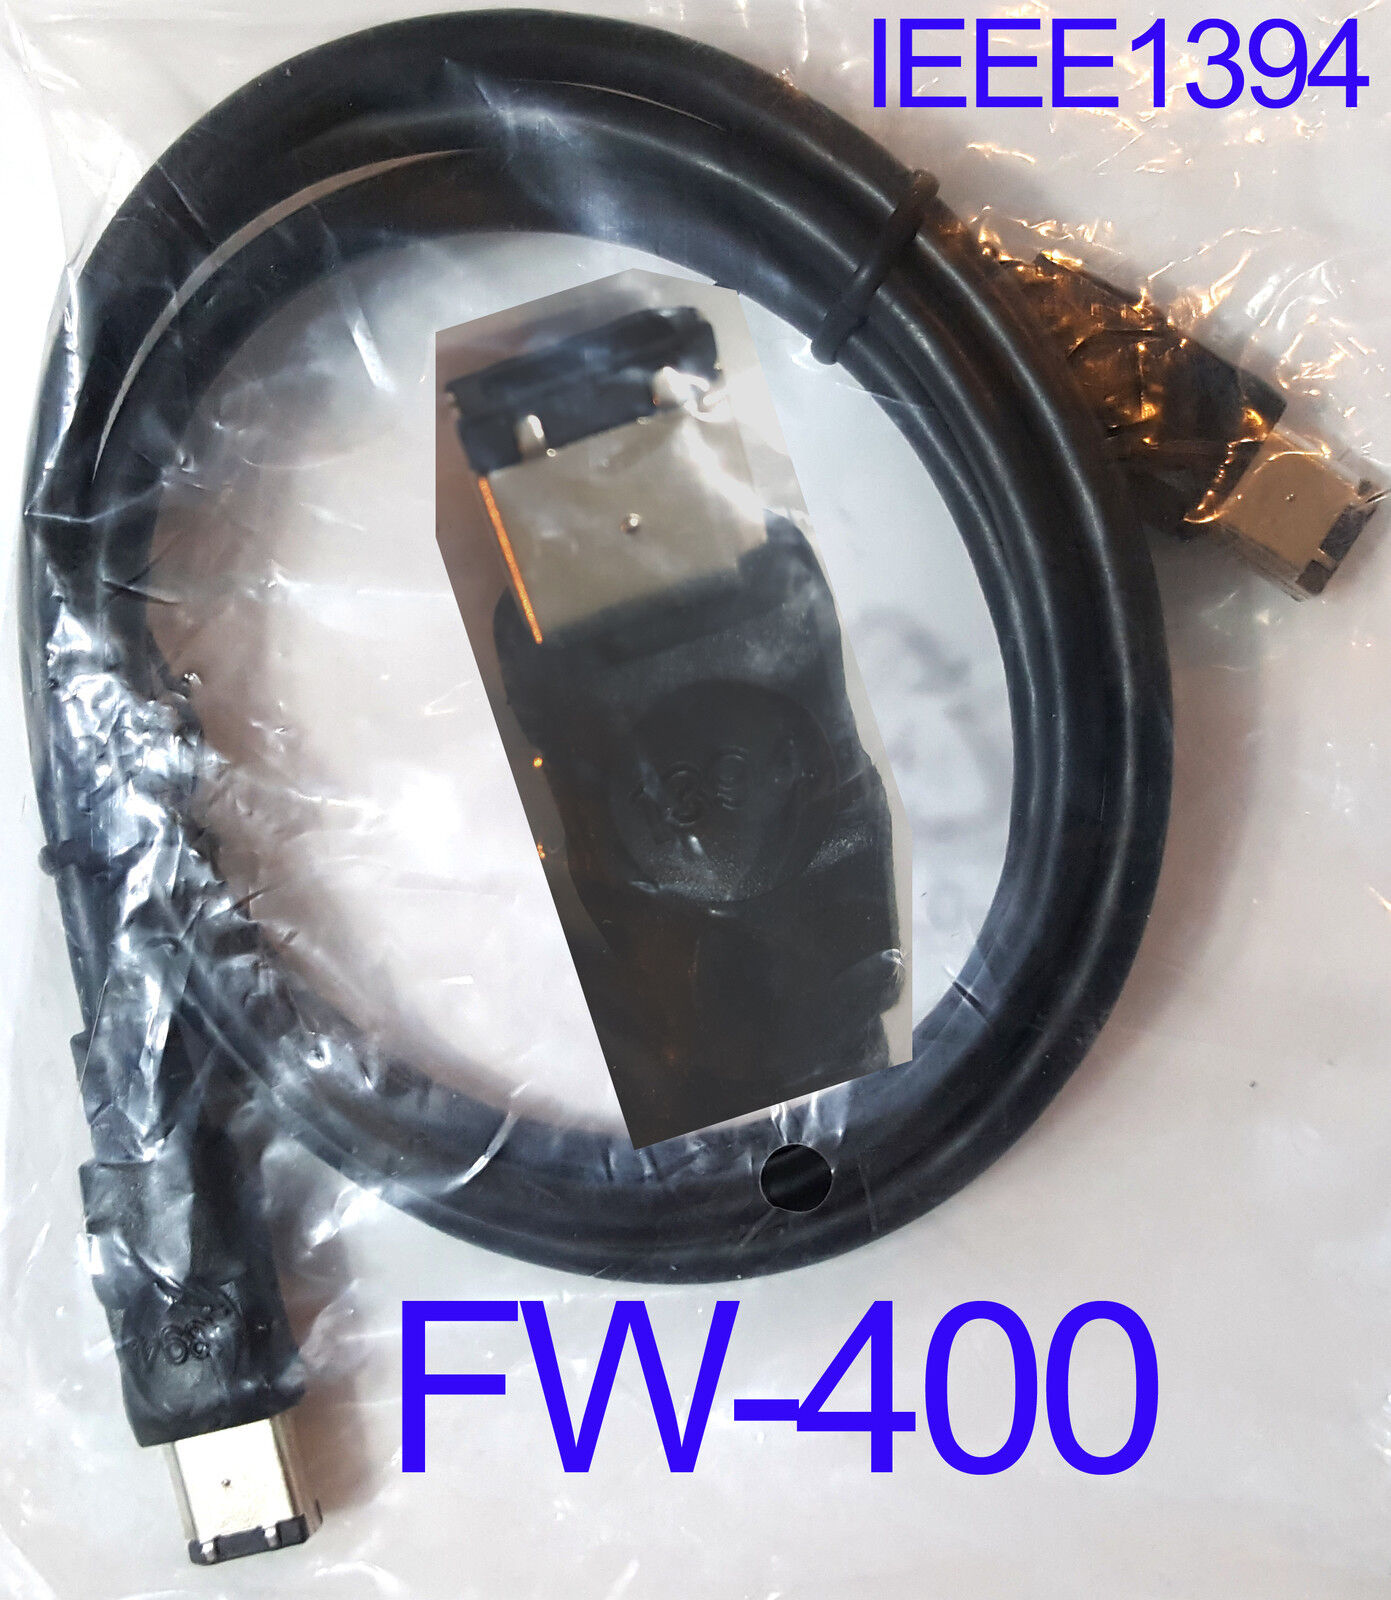 NEW 6' Ft FW400 Firewire IEEE-1394a Male 6-Pin Video Data Cable Scanner M Cord